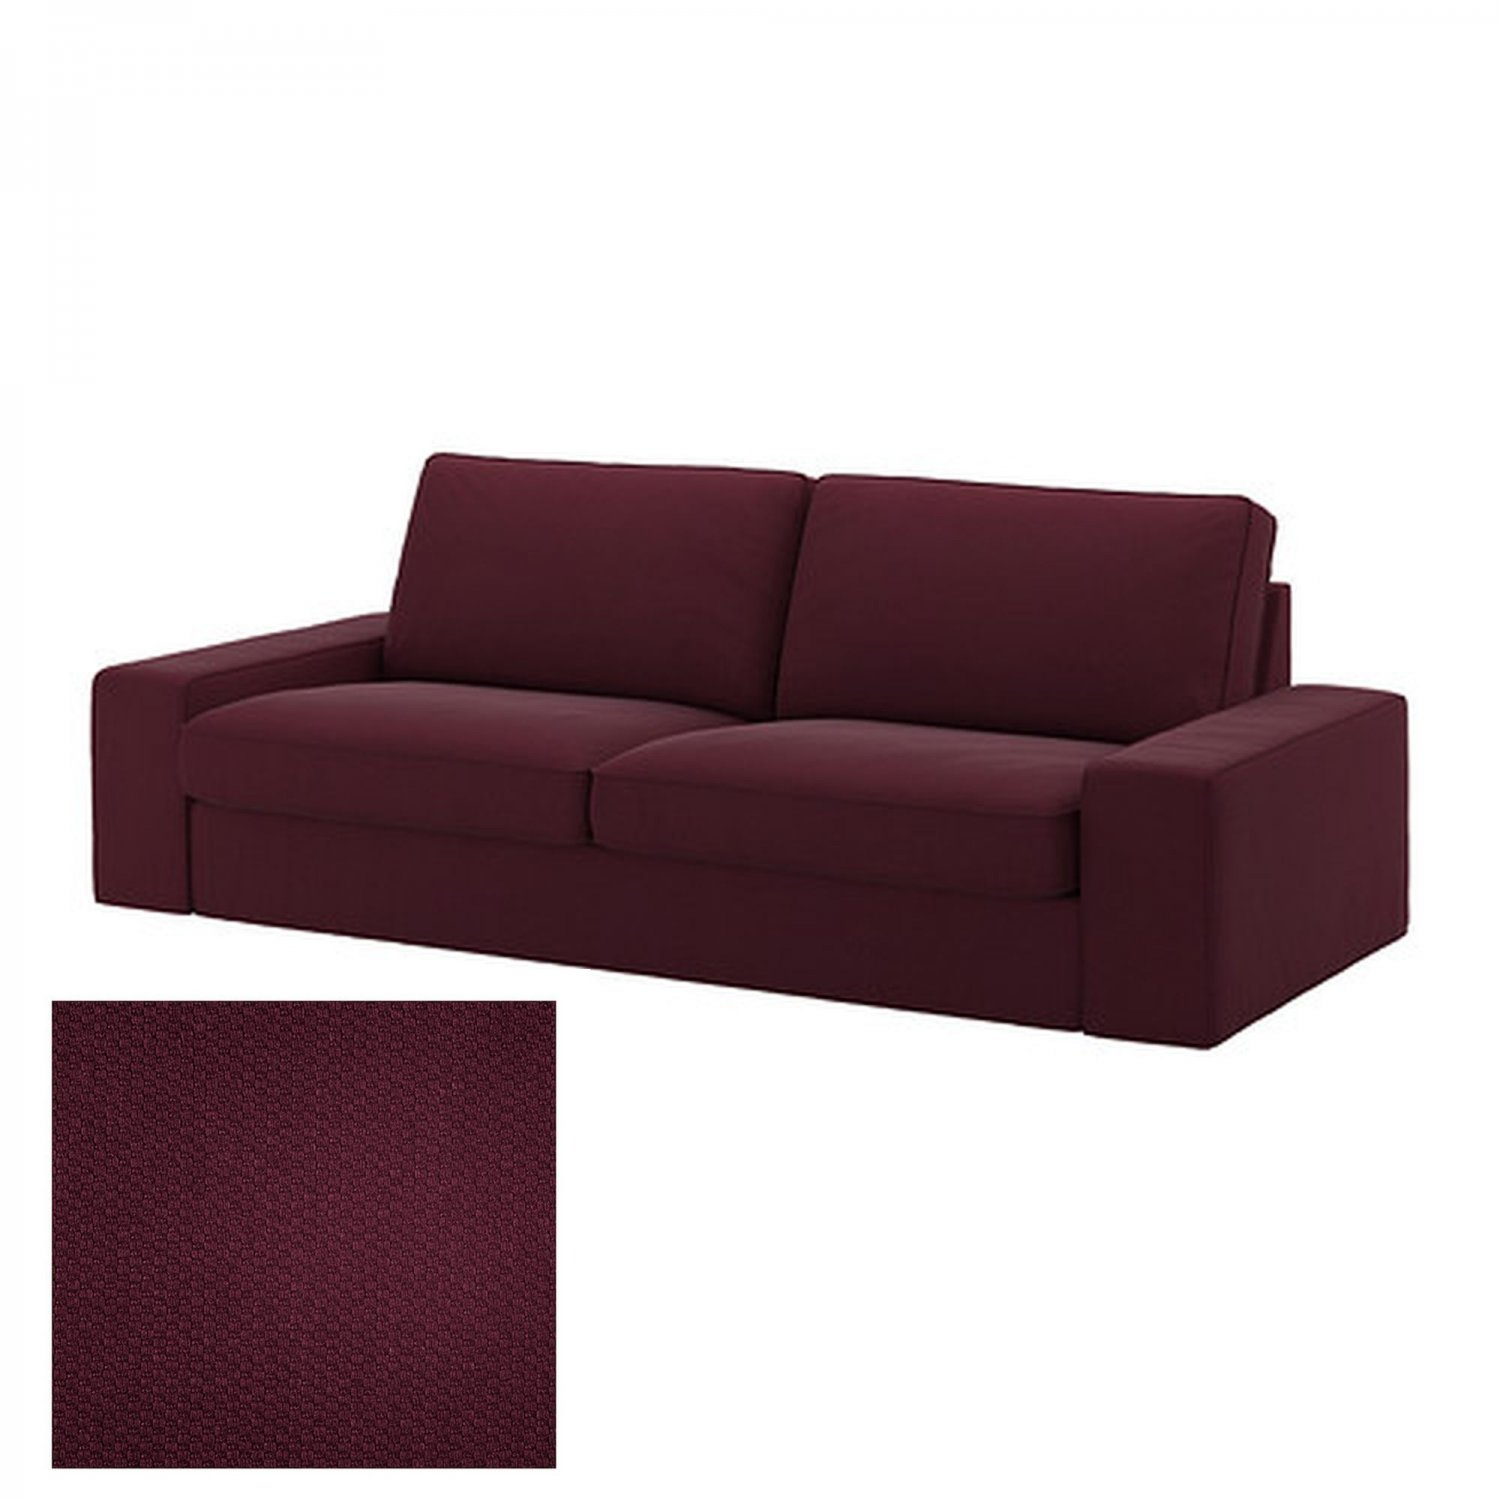 Ikea Kivik 3 Seat Sofa Slipcover Cover Dansbo Red Lilac Red Lilac Purple